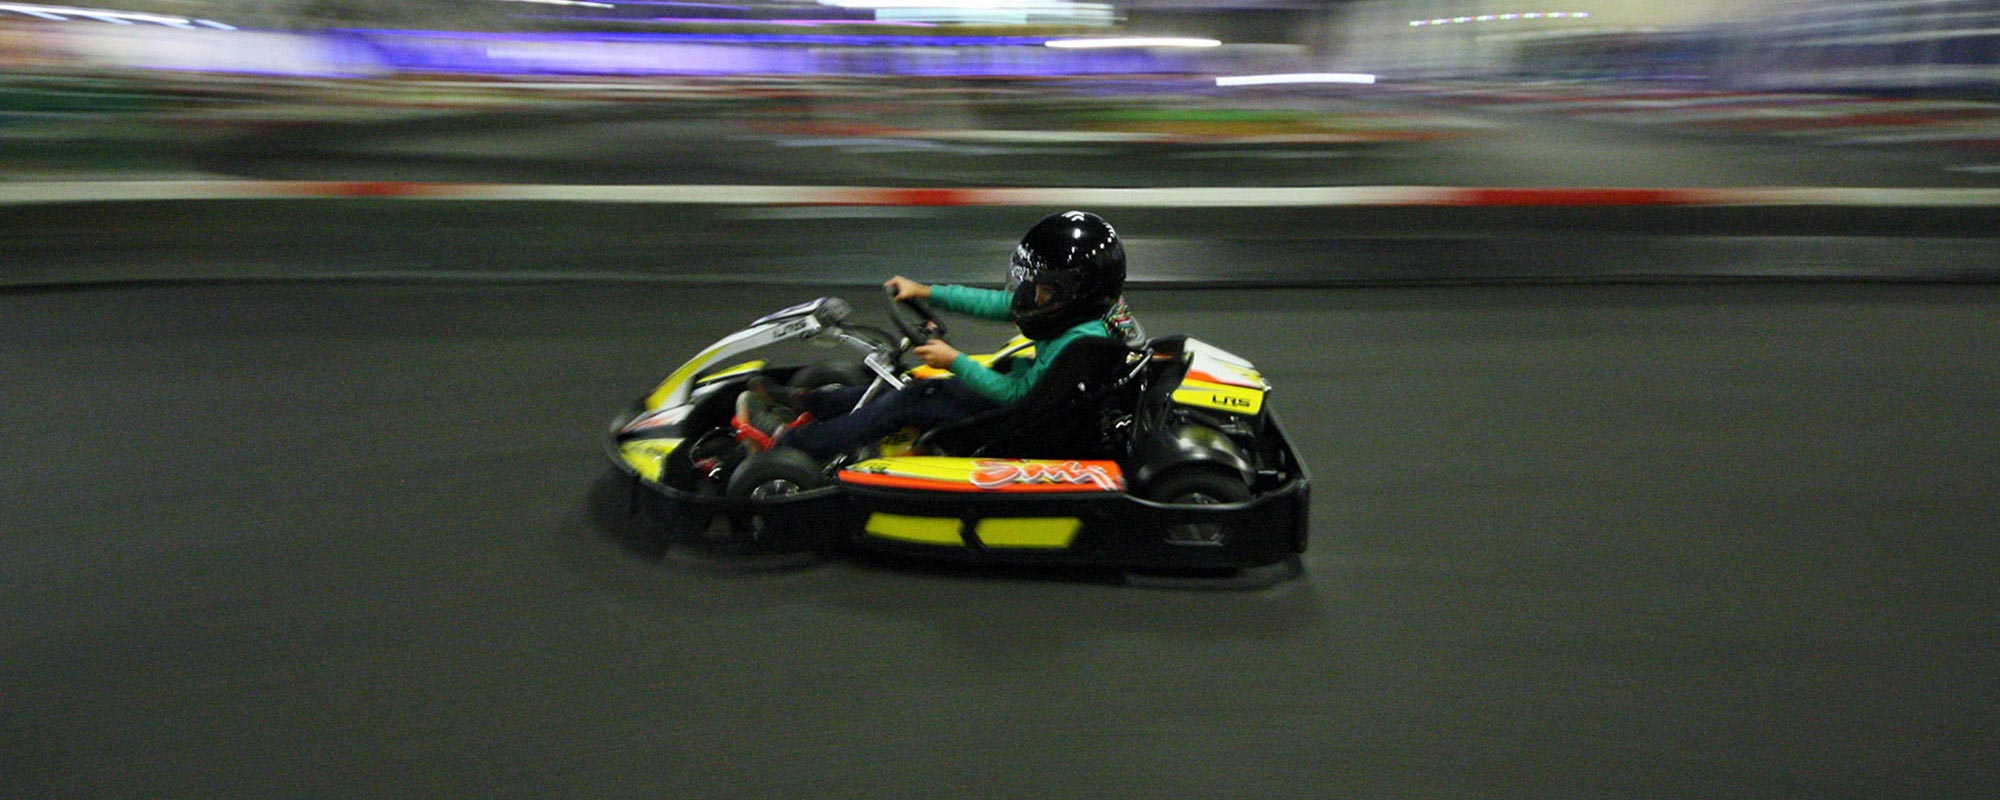 ebafkc-juniorkarting-2000x800-14